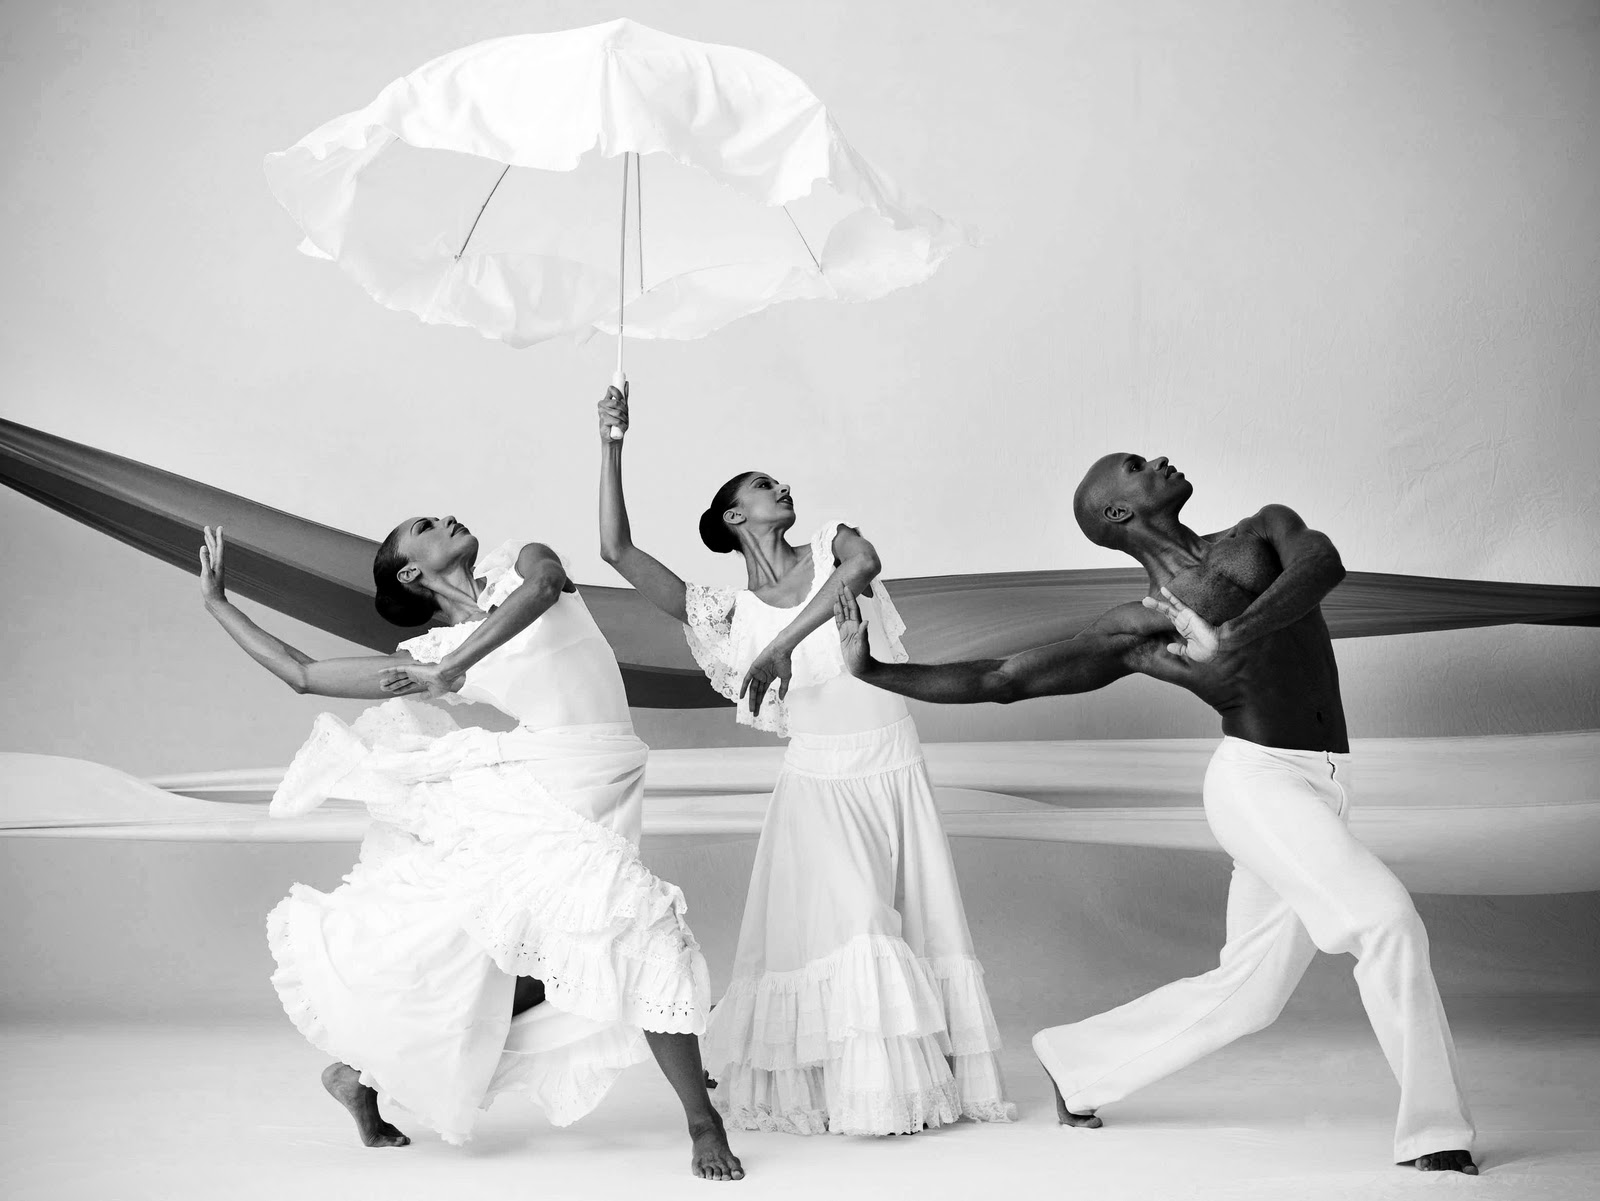 black singles in ailey Alvin ailey showed me how to fly to some, being a black man is deadly and being queer is an abomination and still, to others, self-love is inconceivable.